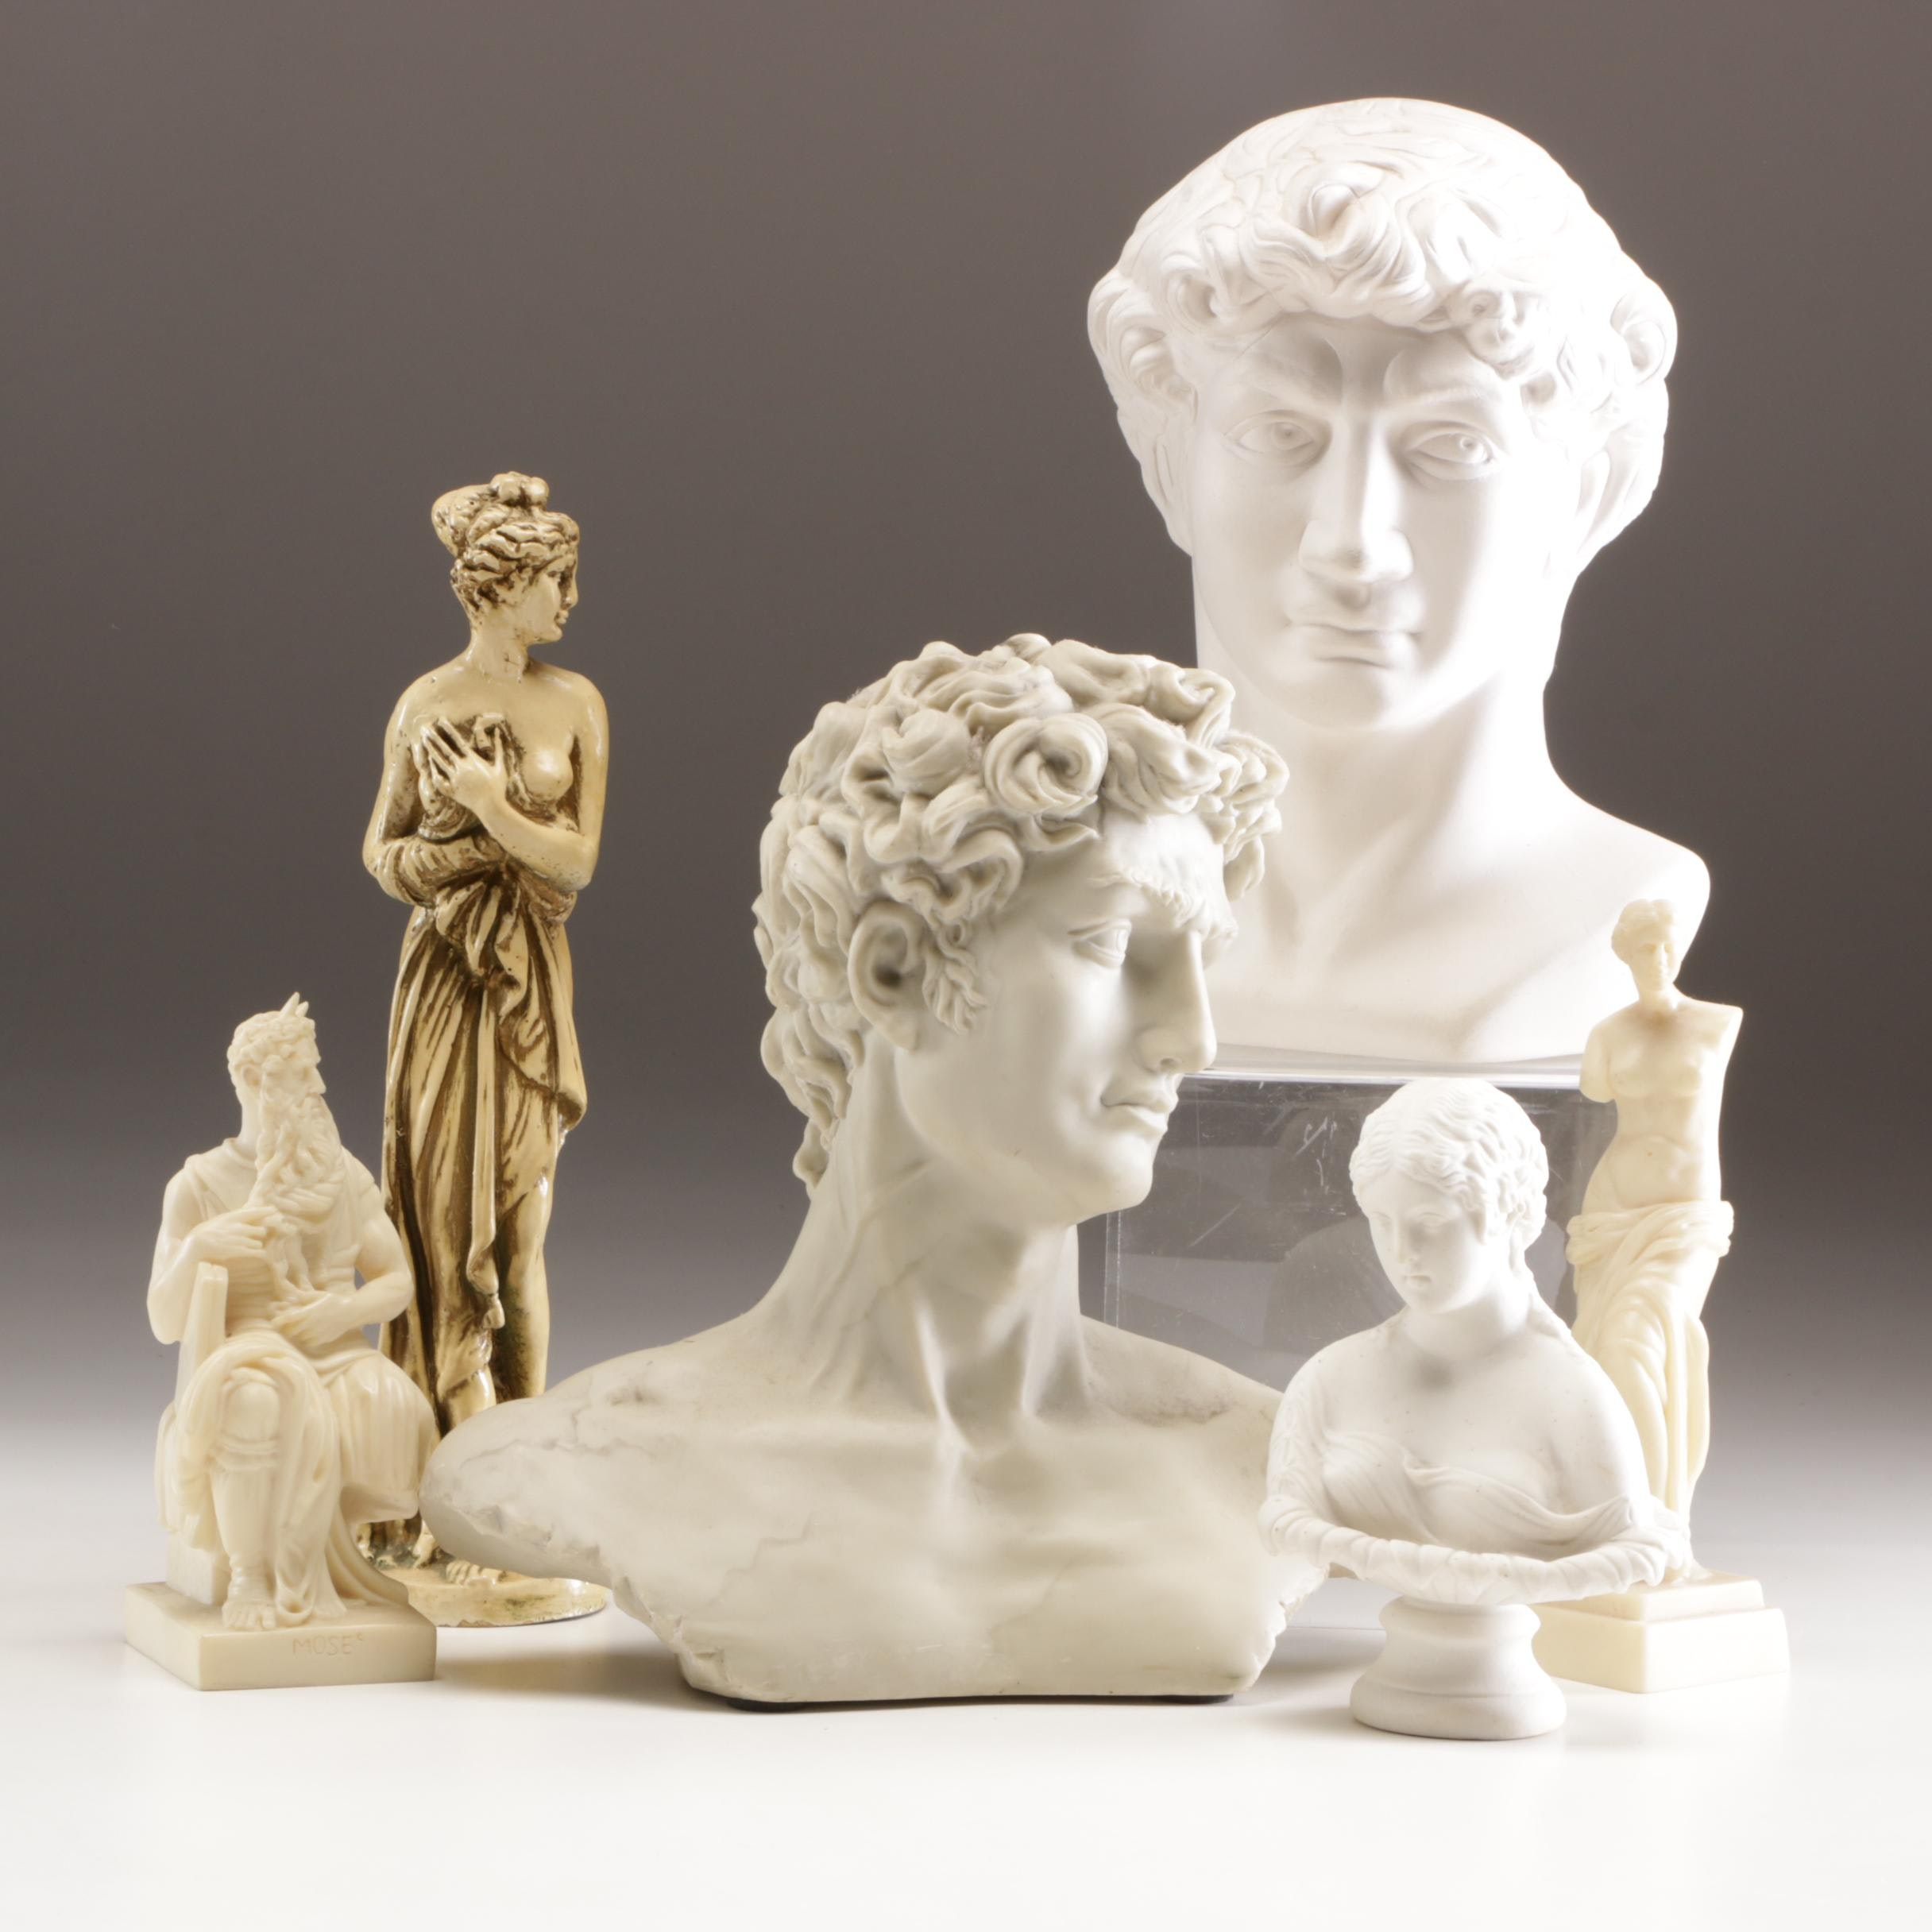 Signed Ceramic Bust and Grouping of Resin, Wood and Composite Figurines